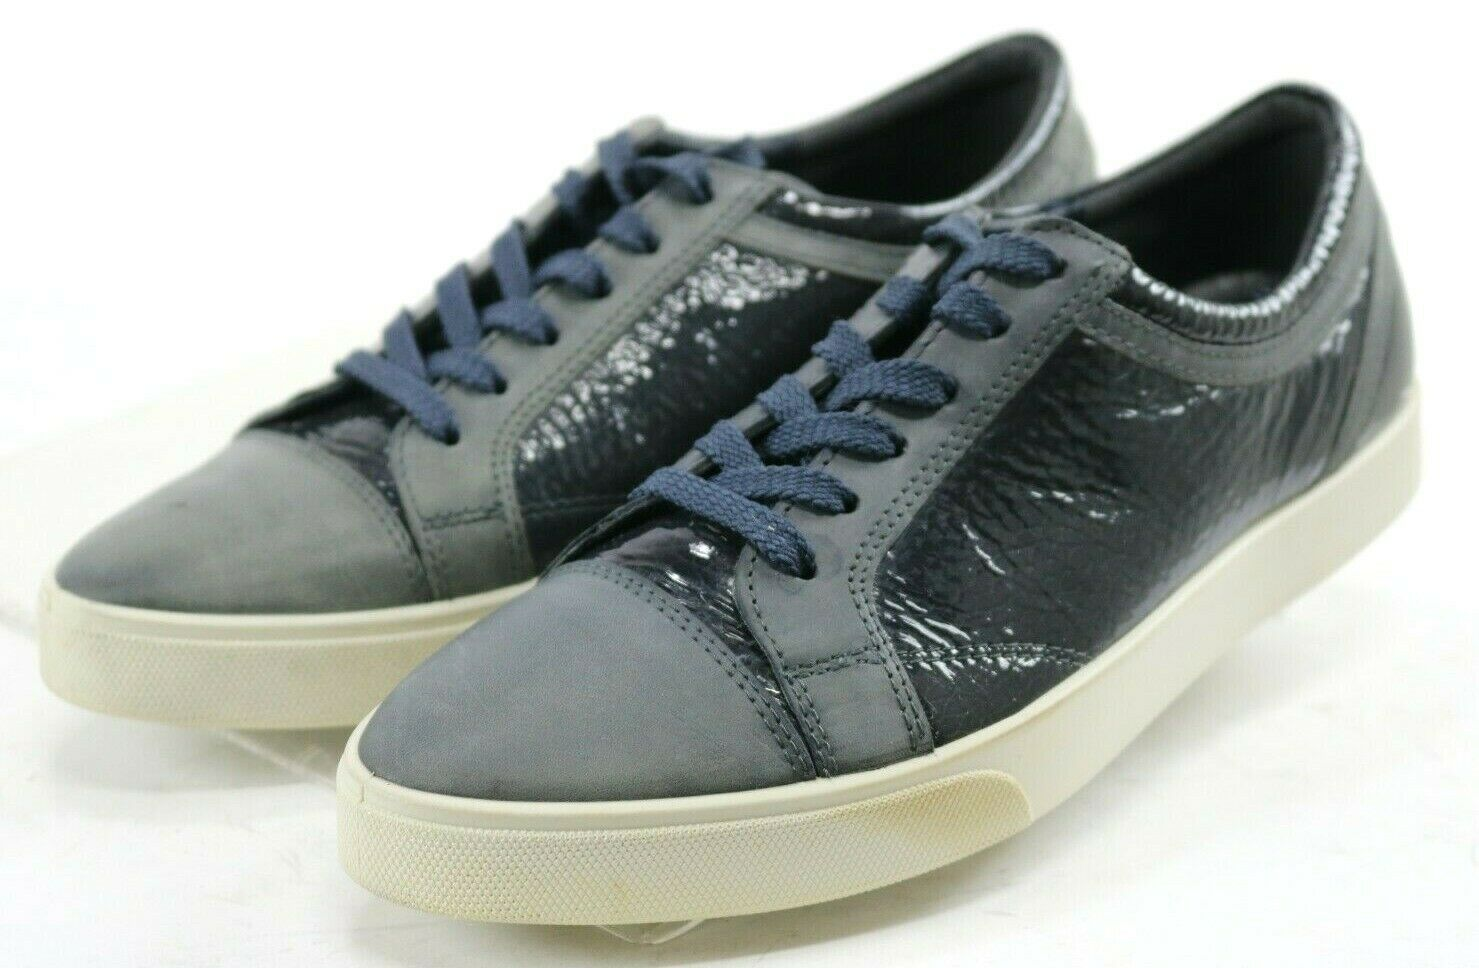 ECCO Women's  Sneakers shoes Size US 9-9.5 Patent Leather bluee